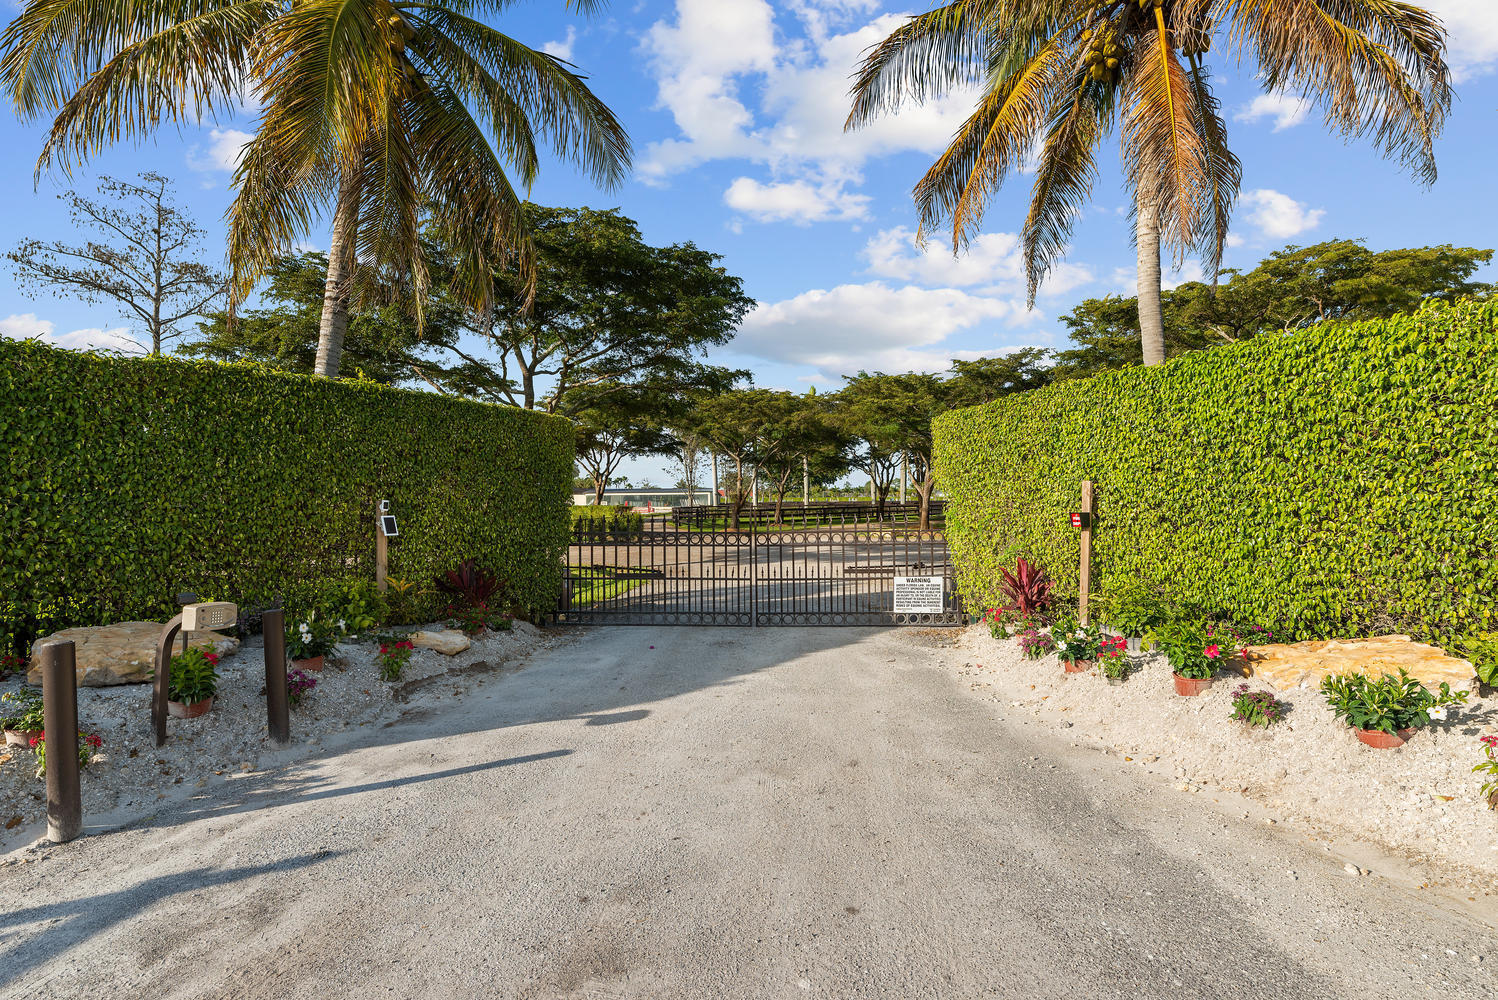 13075 57th Place, Wellington, Florida 33449, 5 Bedrooms Bedrooms, ,6 BathroomsBathrooms,Barn,For Rent,57th,1,RX-10644888